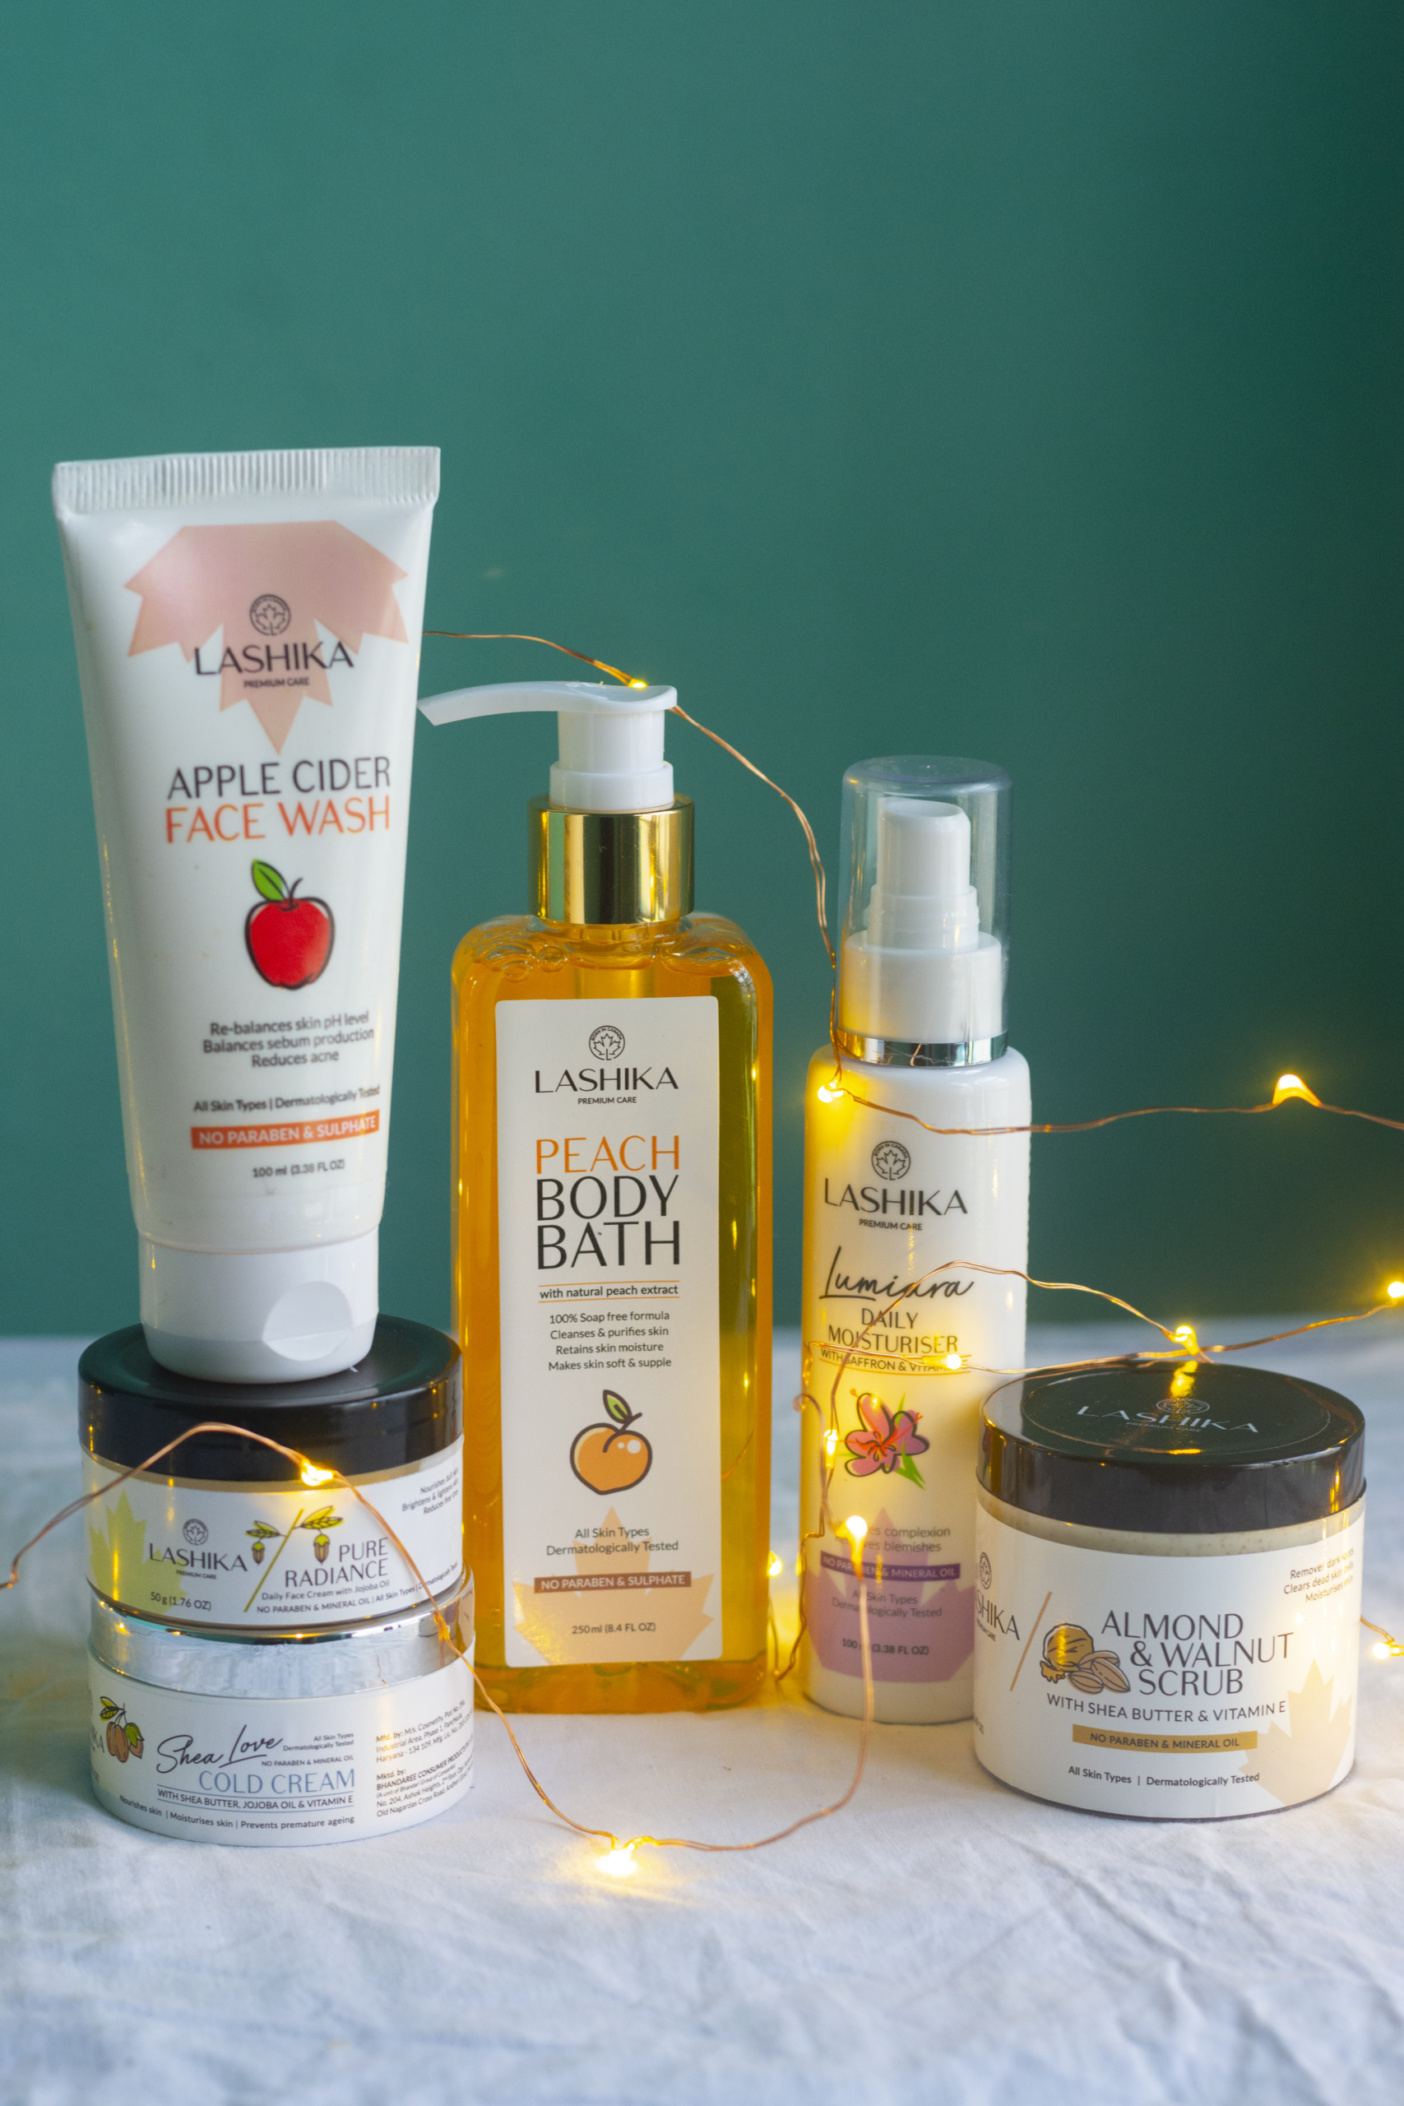 Lashika- No Harm Skincare Brand Explained | Cherry On Top